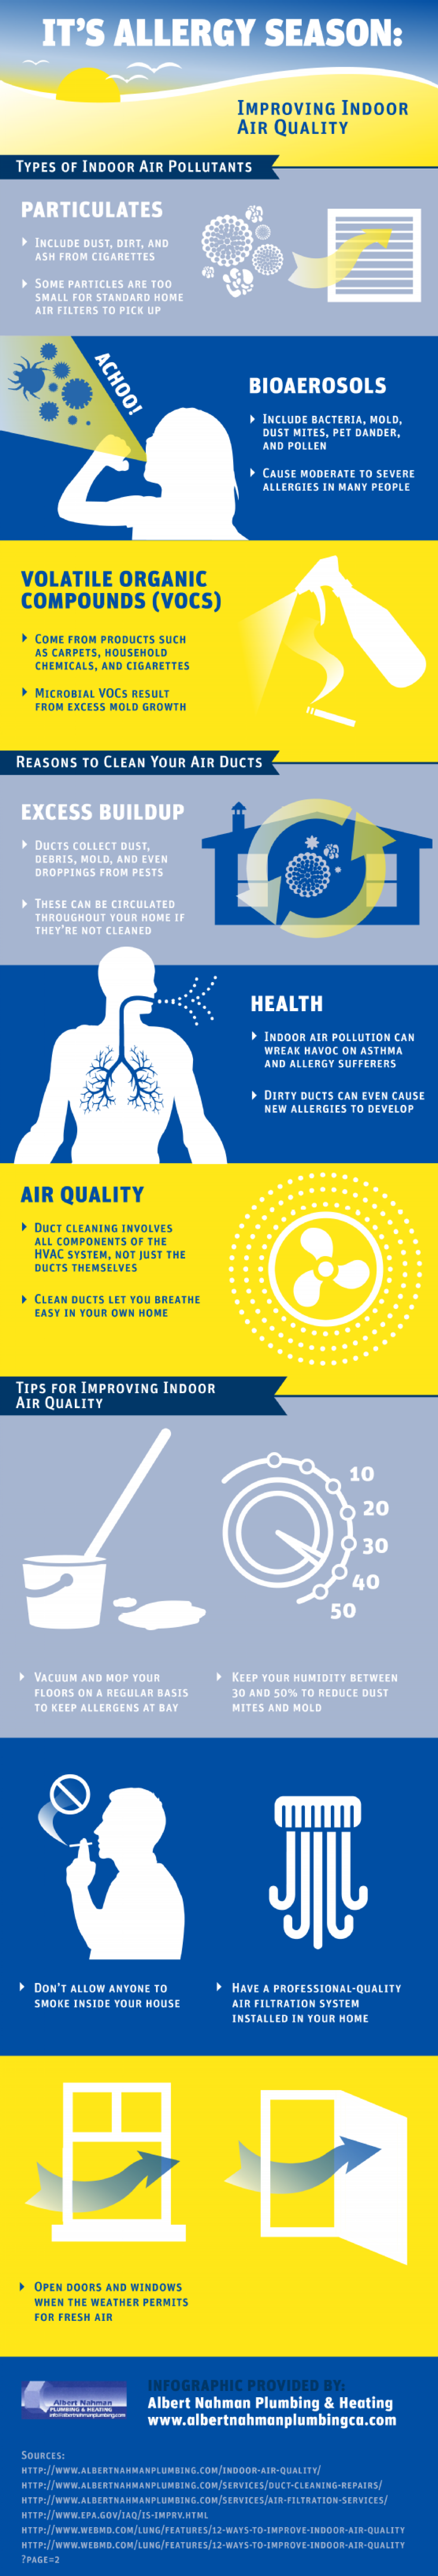 It's Allergy Season: Improving Indoor Air Quality Infographic